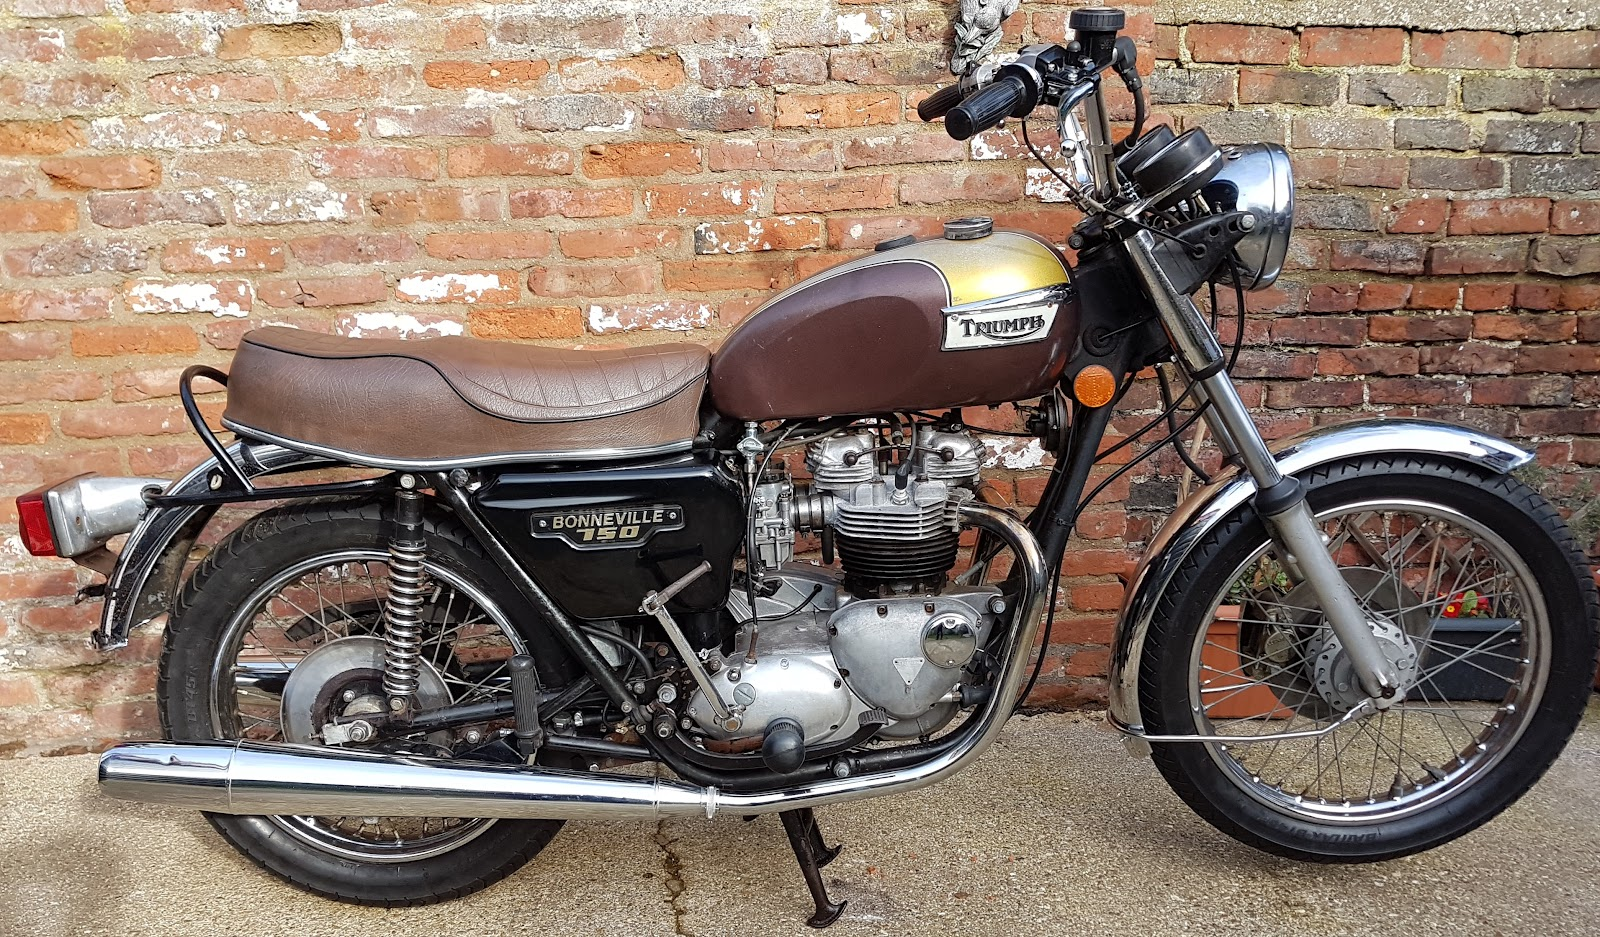 Triumph Bonneville T140 restored and registered.